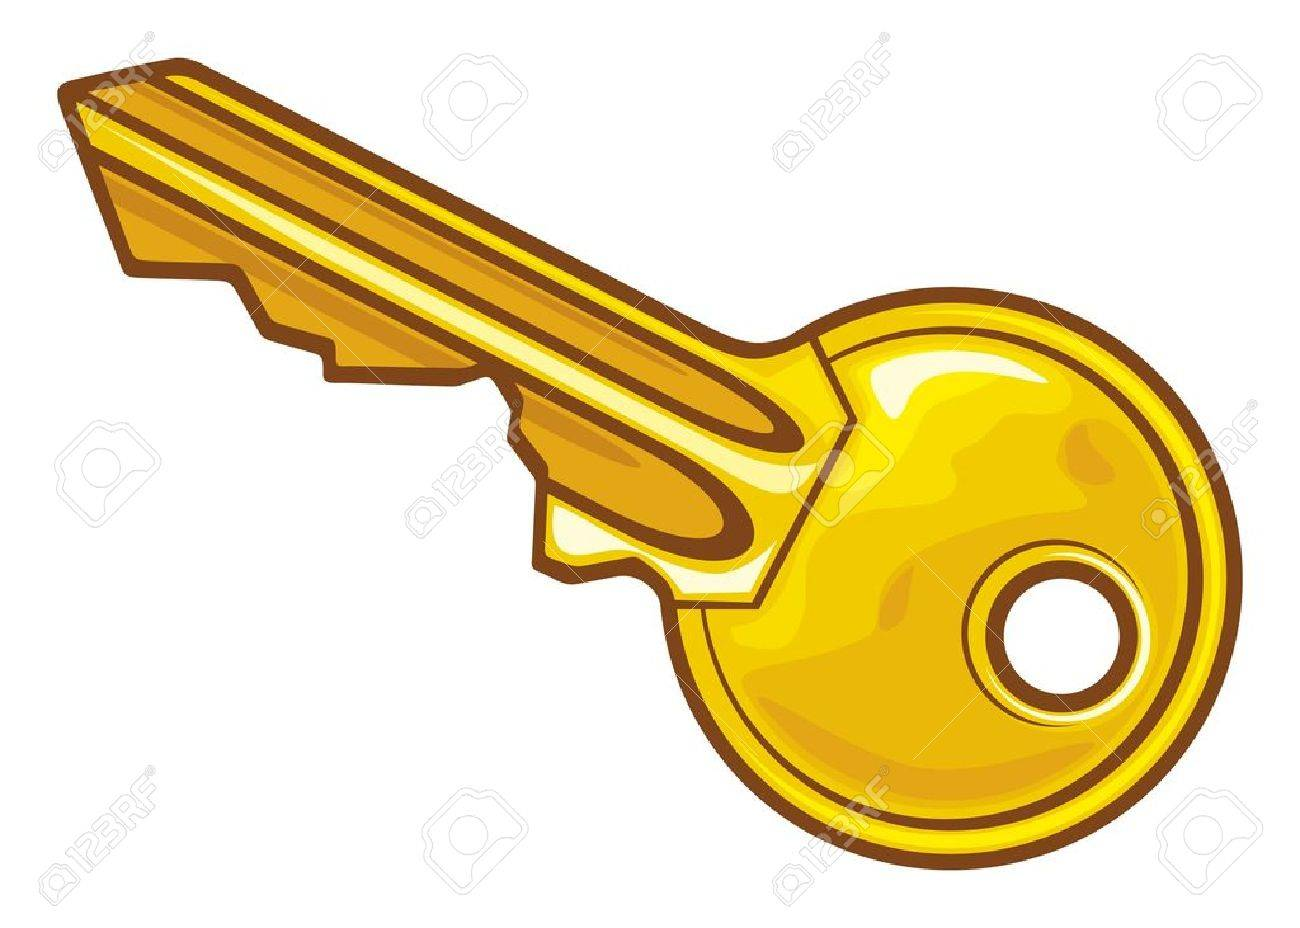 Key illustration Stock Vector - 15099215